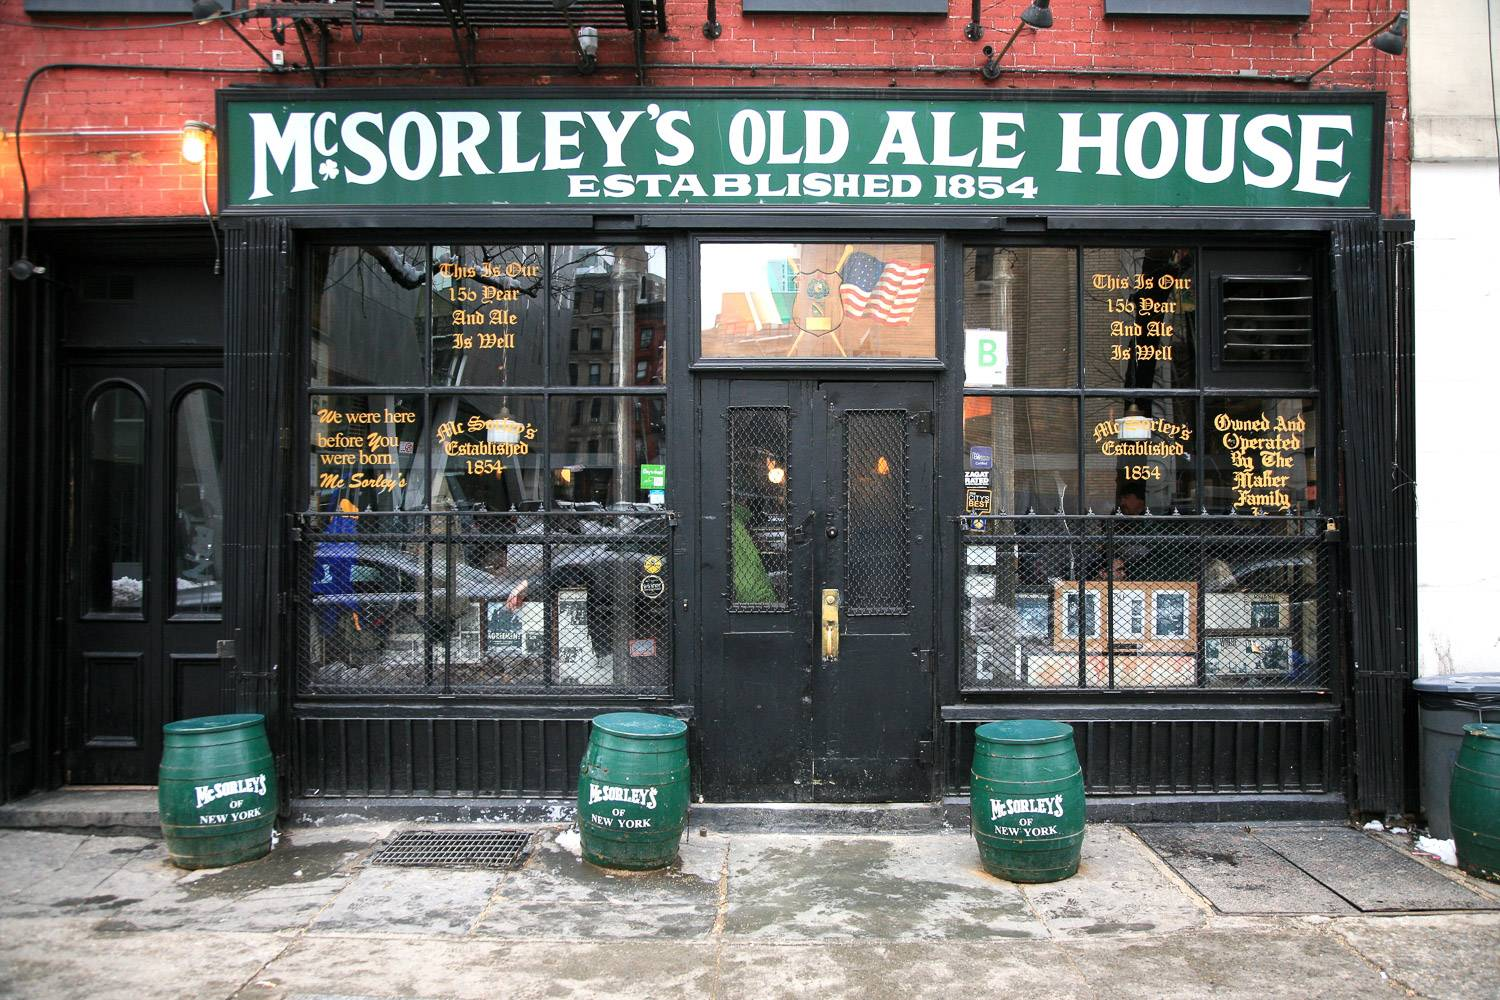 Image of the front of McSorley's Old Ale House with sign saying Established in 1854 an Irish pub with beer barrels in front